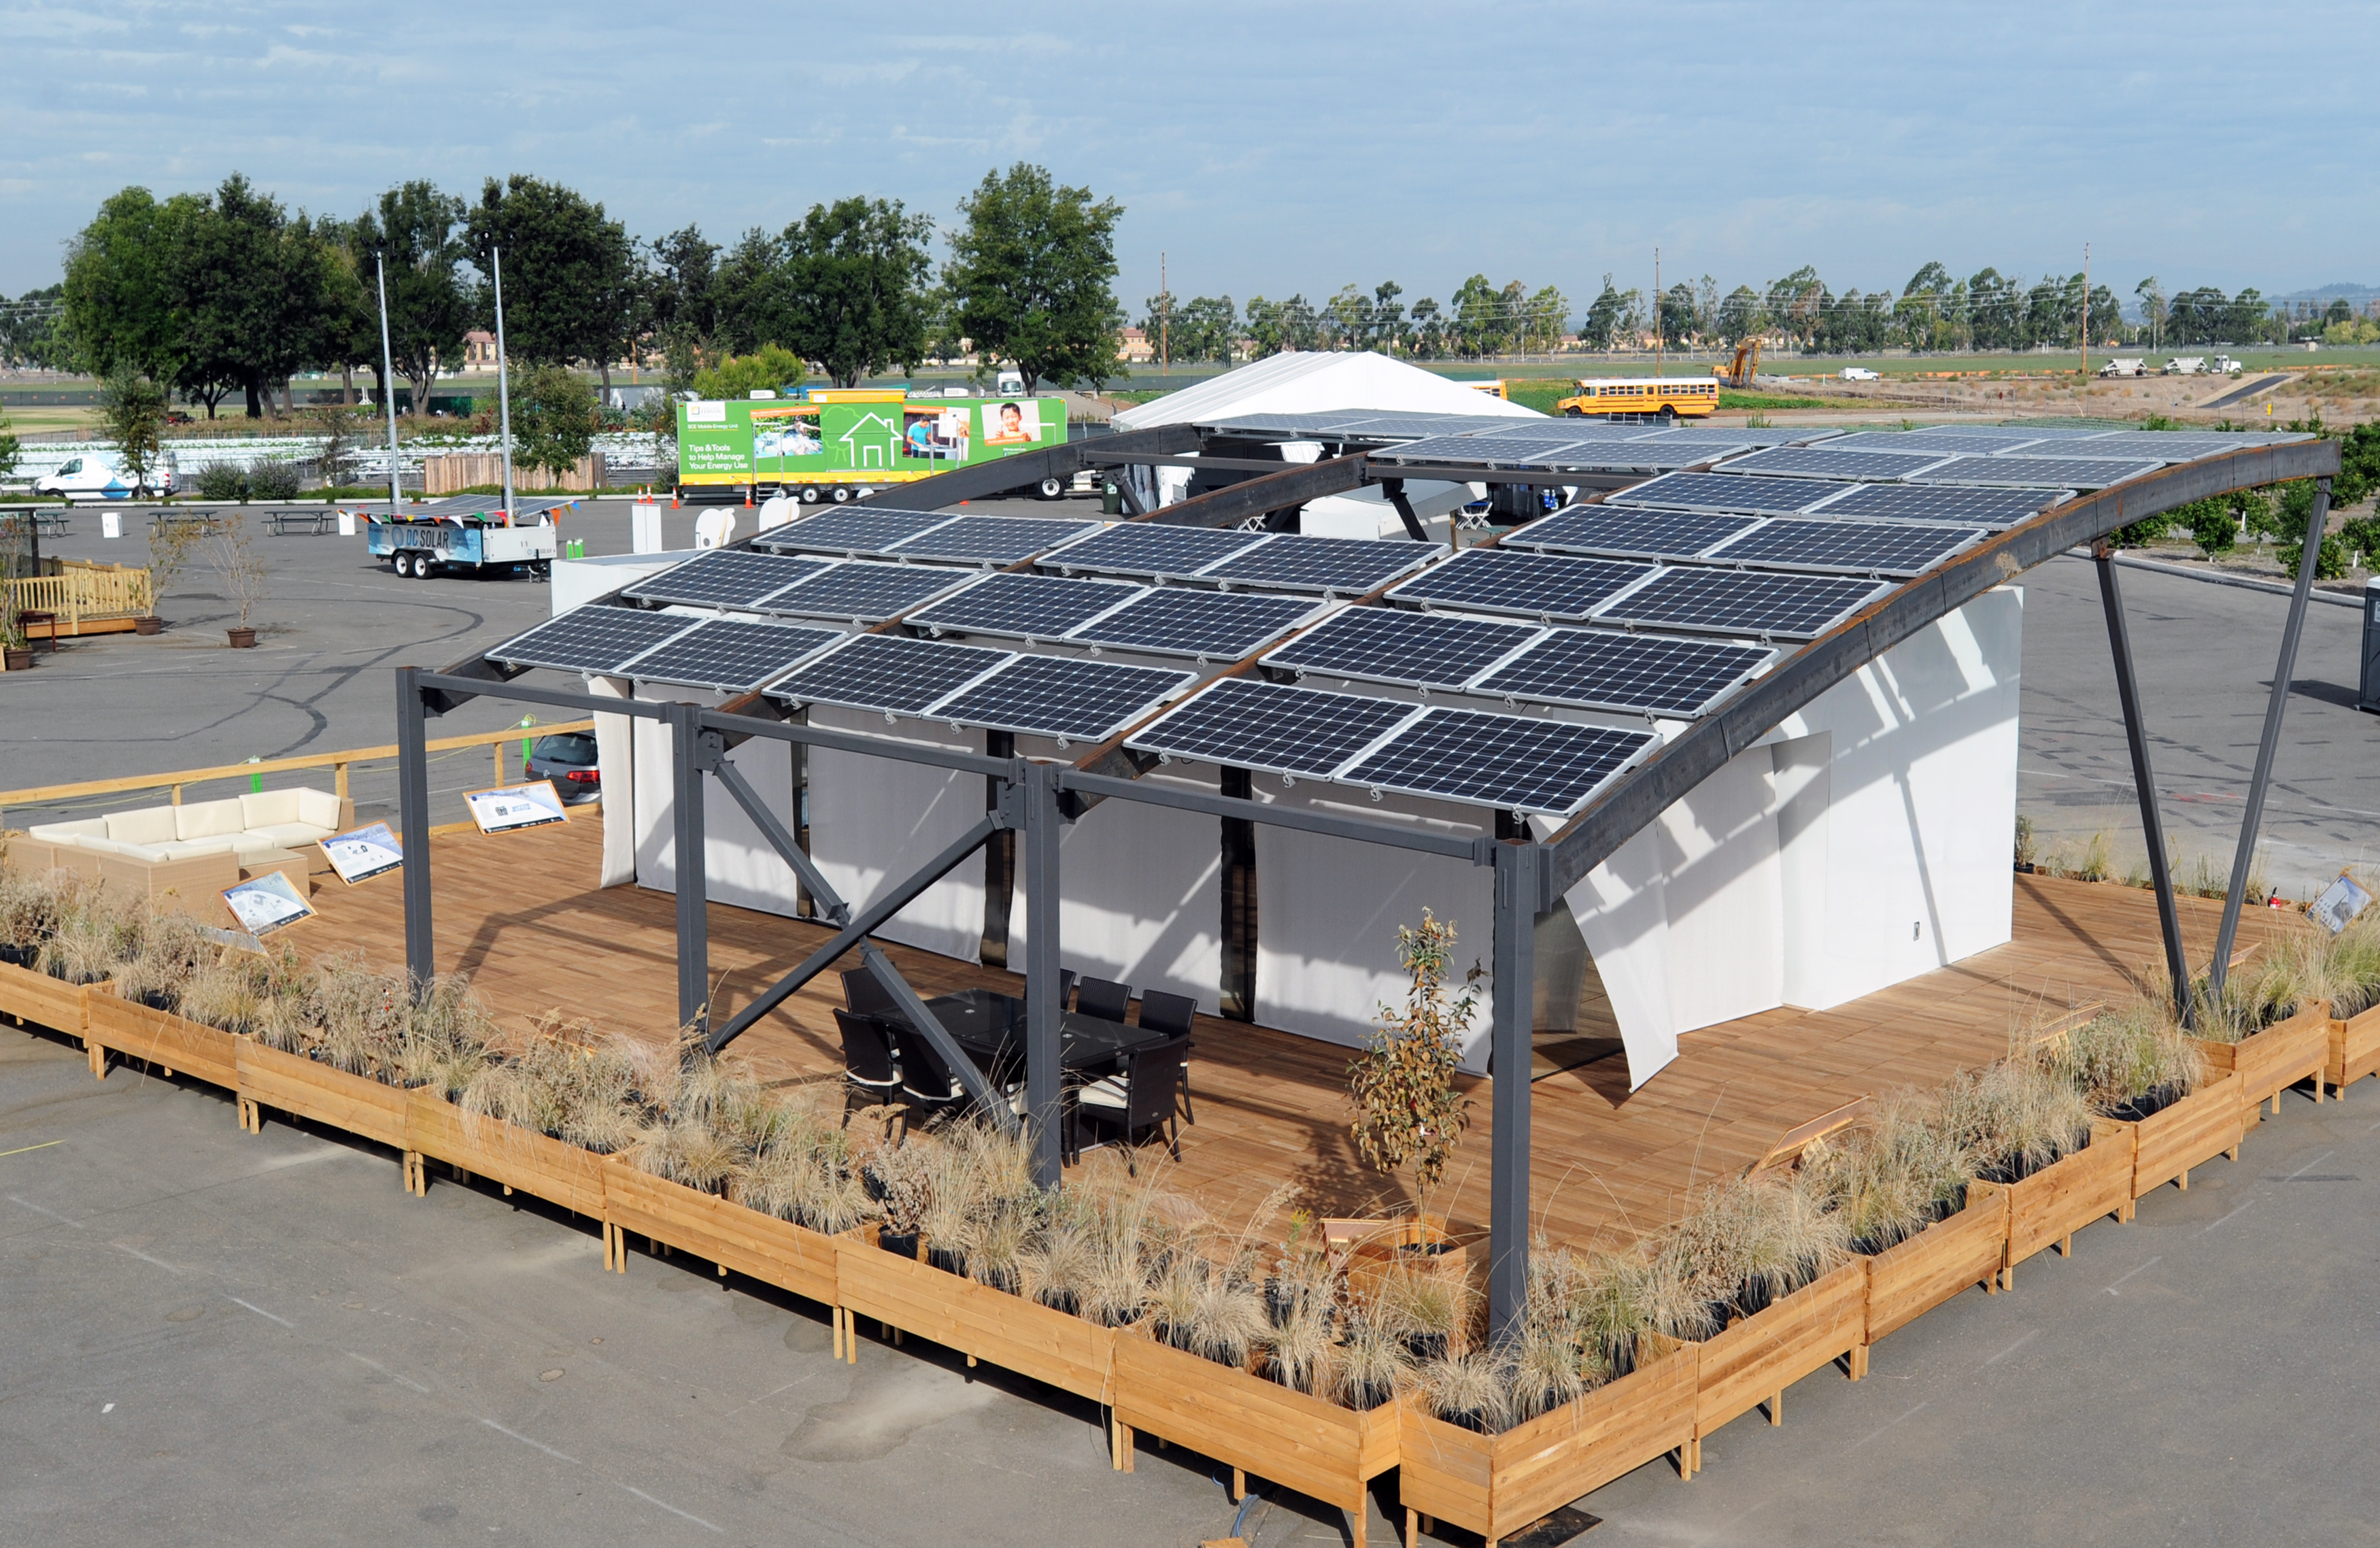 Solar decathlon 2015 west virginia university and for Solar decathlon 2015